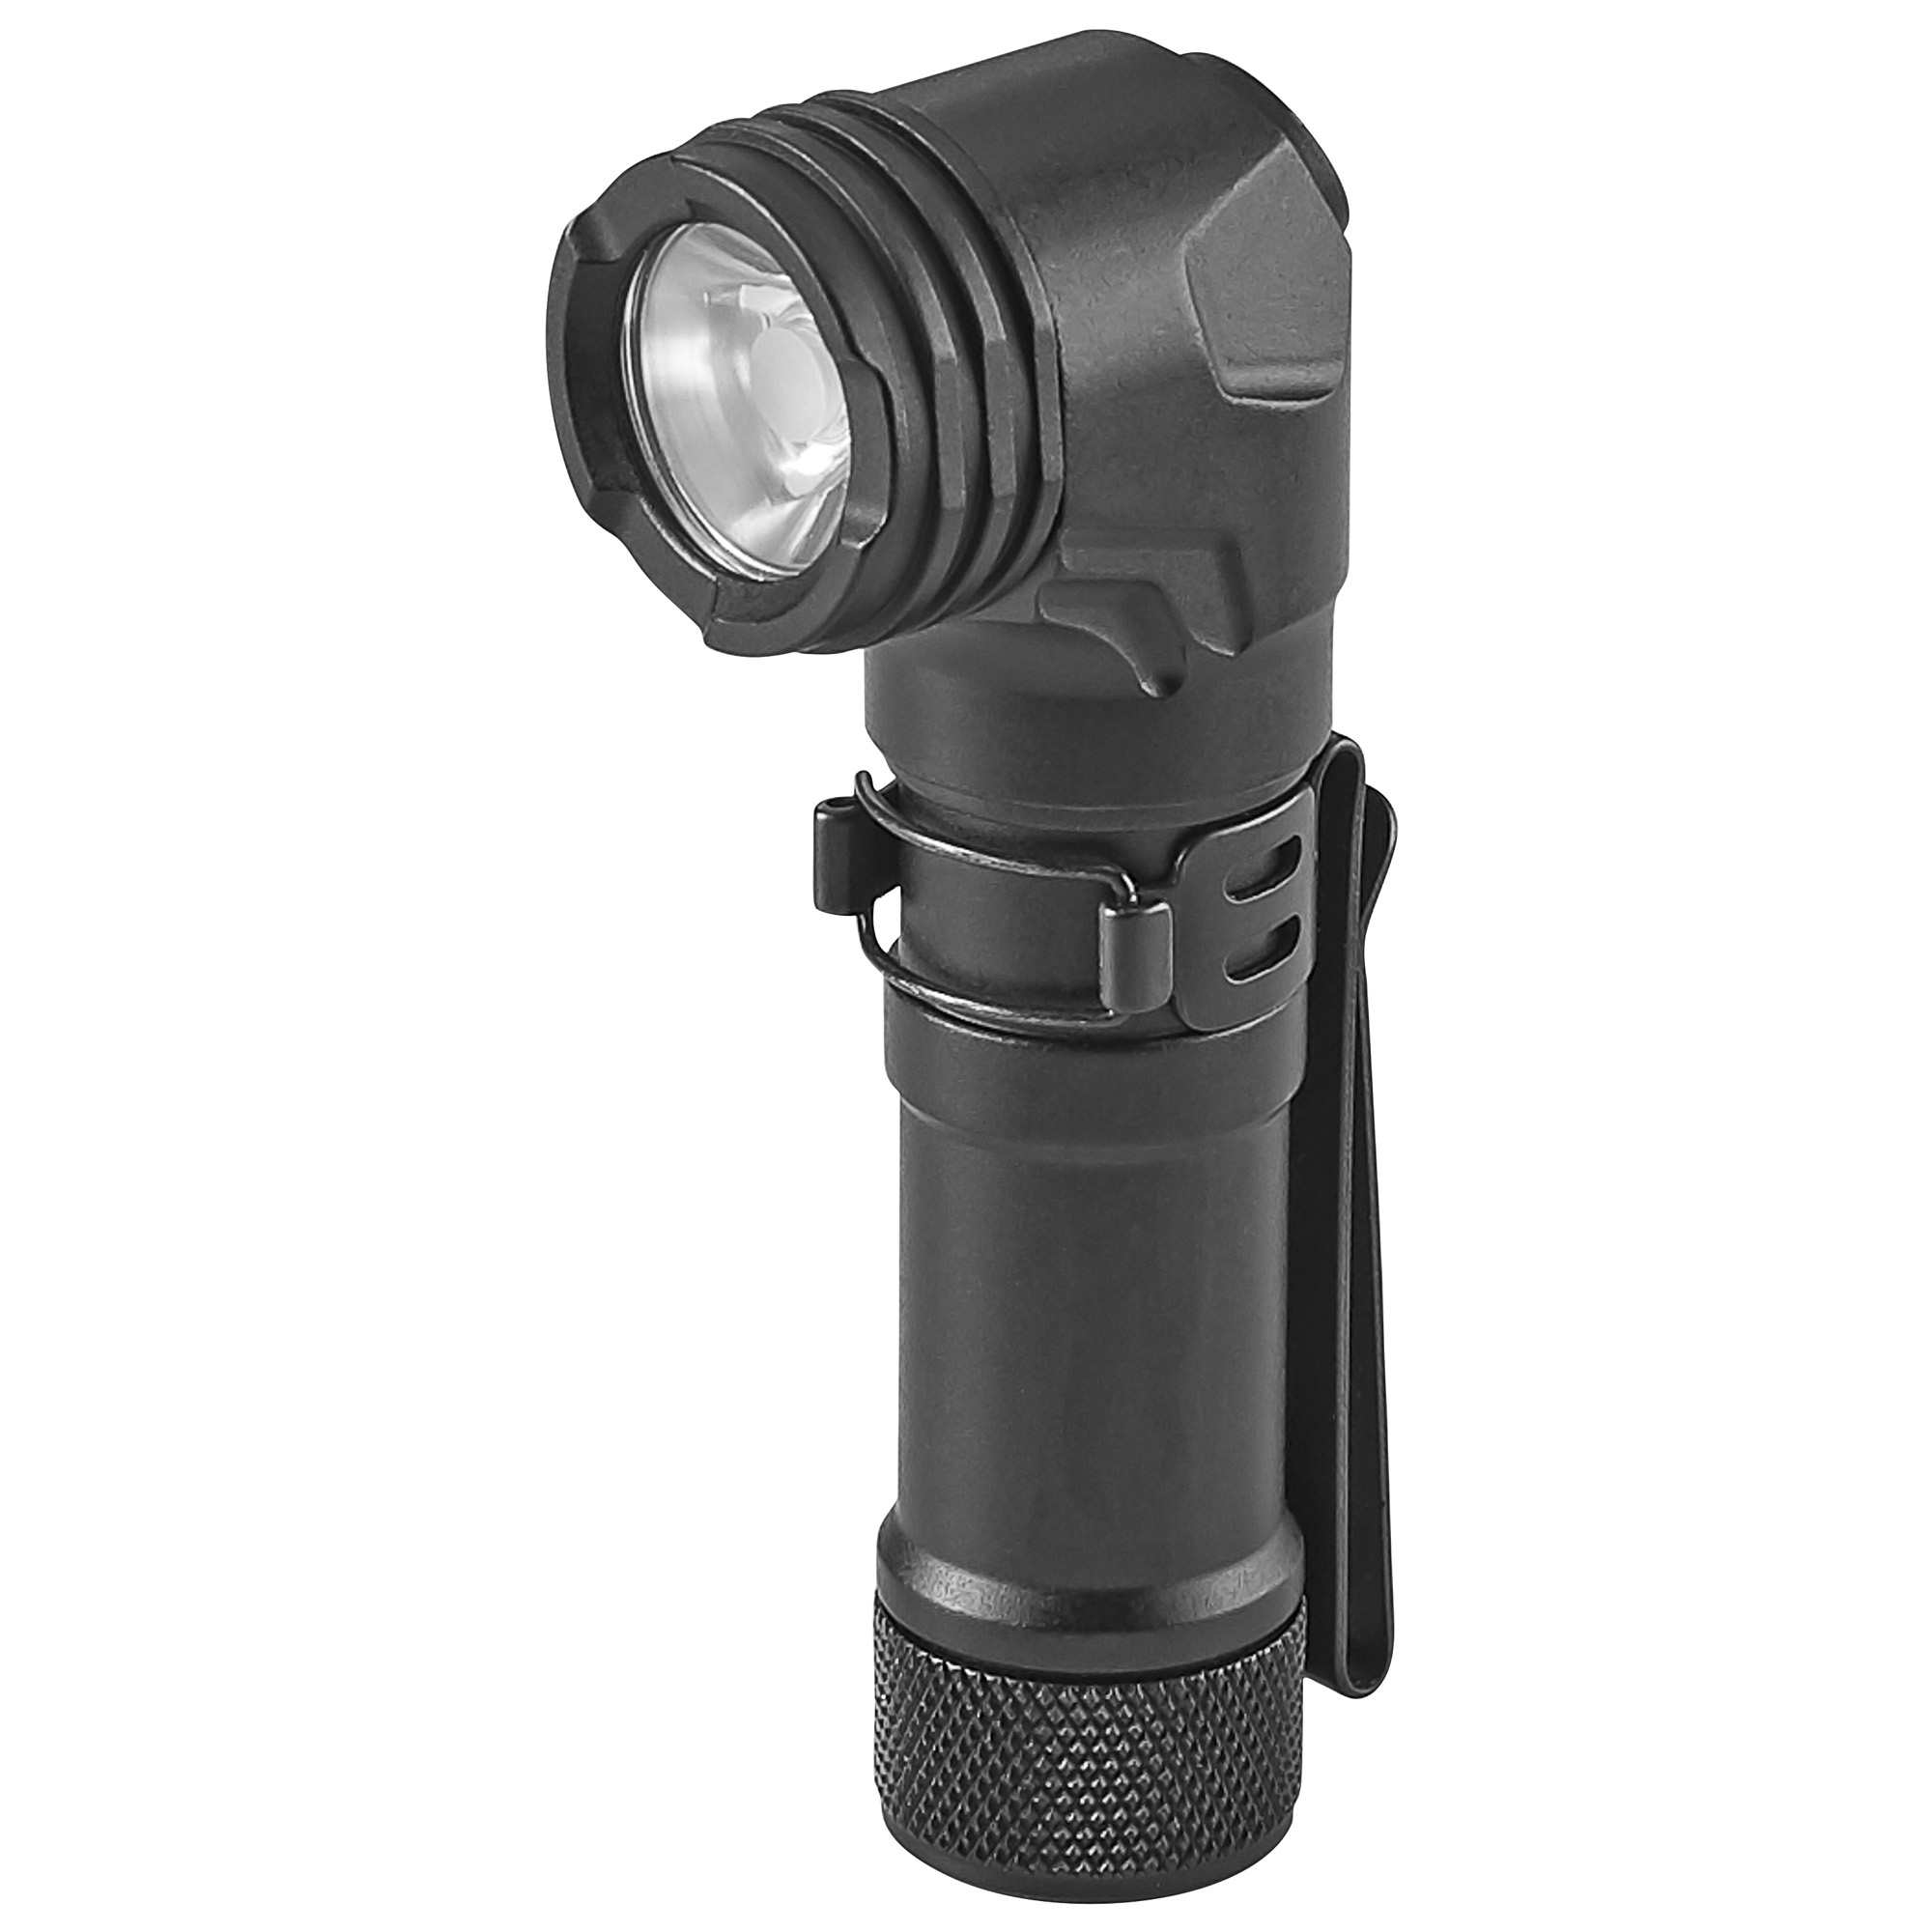 "The ProTac 90 is an EDC light with a twist. It features a right-angle head that gives extra lighting capability for those with multiple lighting needs. Carry in your hand or attach to your MOLLE"" belts"" harnesses and other gear for hands-free use."